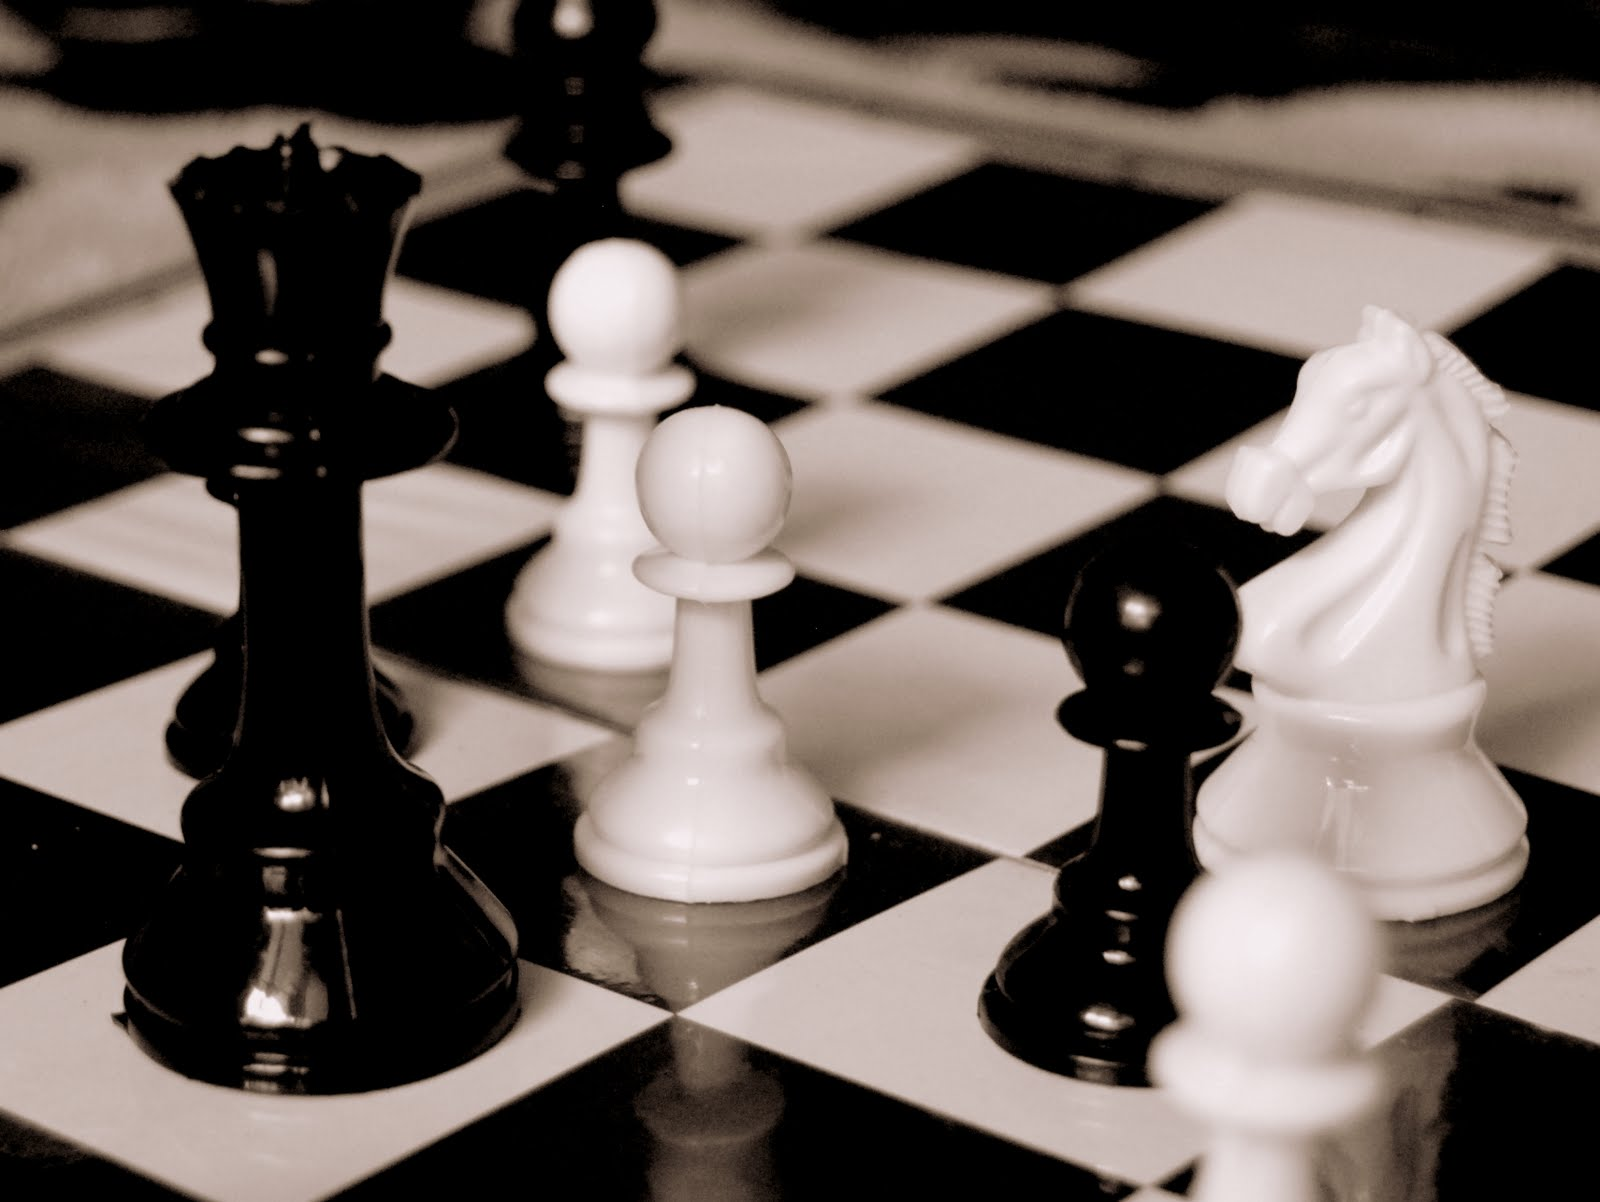 Coffee Rings Everywhere: The Chess game